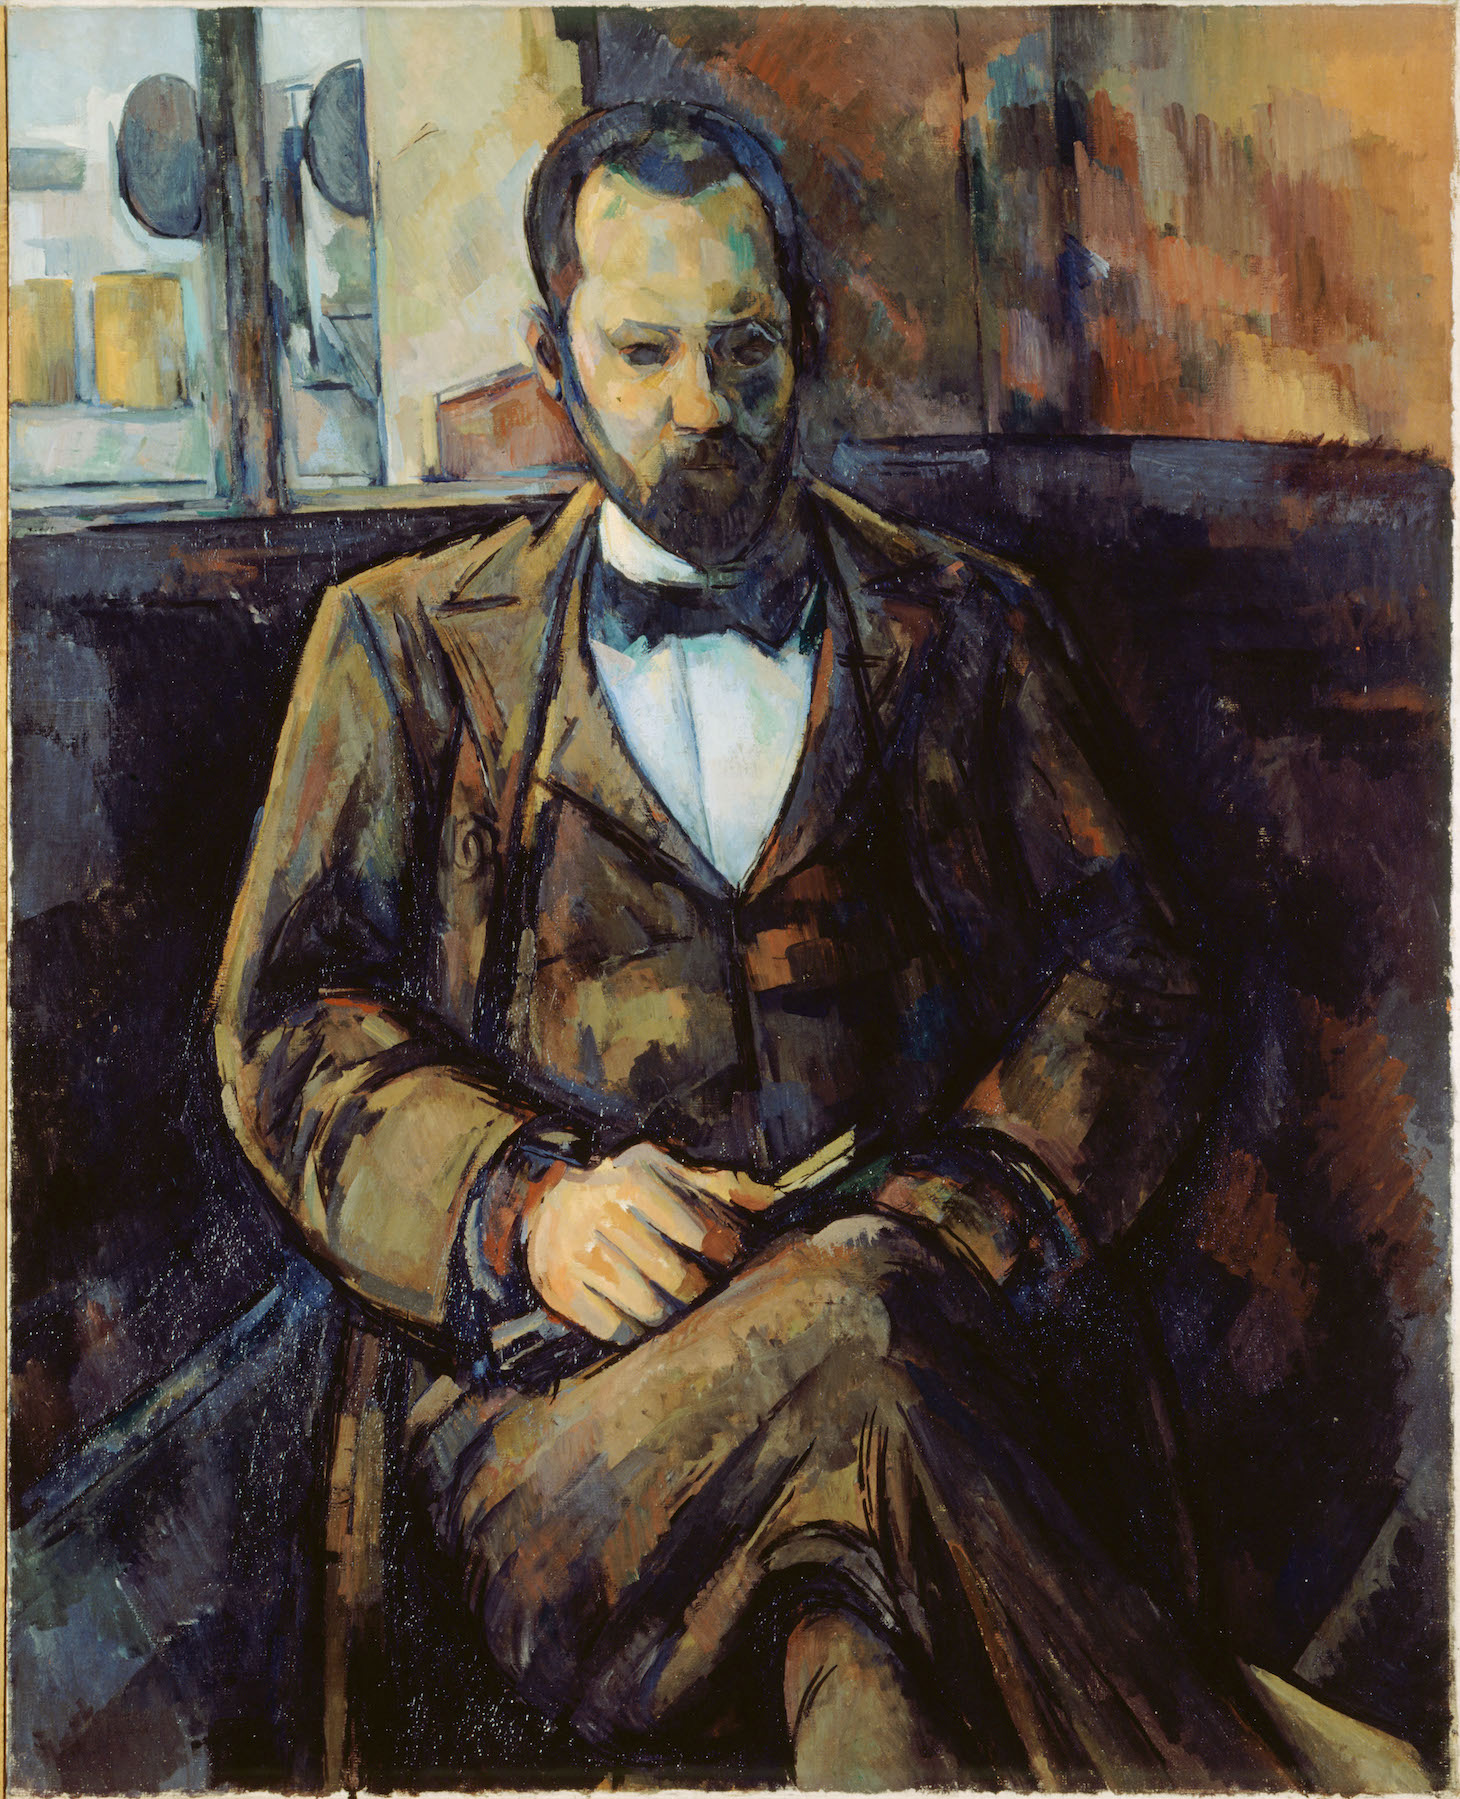 """Portrait of Ambroise Vollard"" by Paul Cézanne (1899), oil on canvas, part of the collection at Petit Palais, Paris"